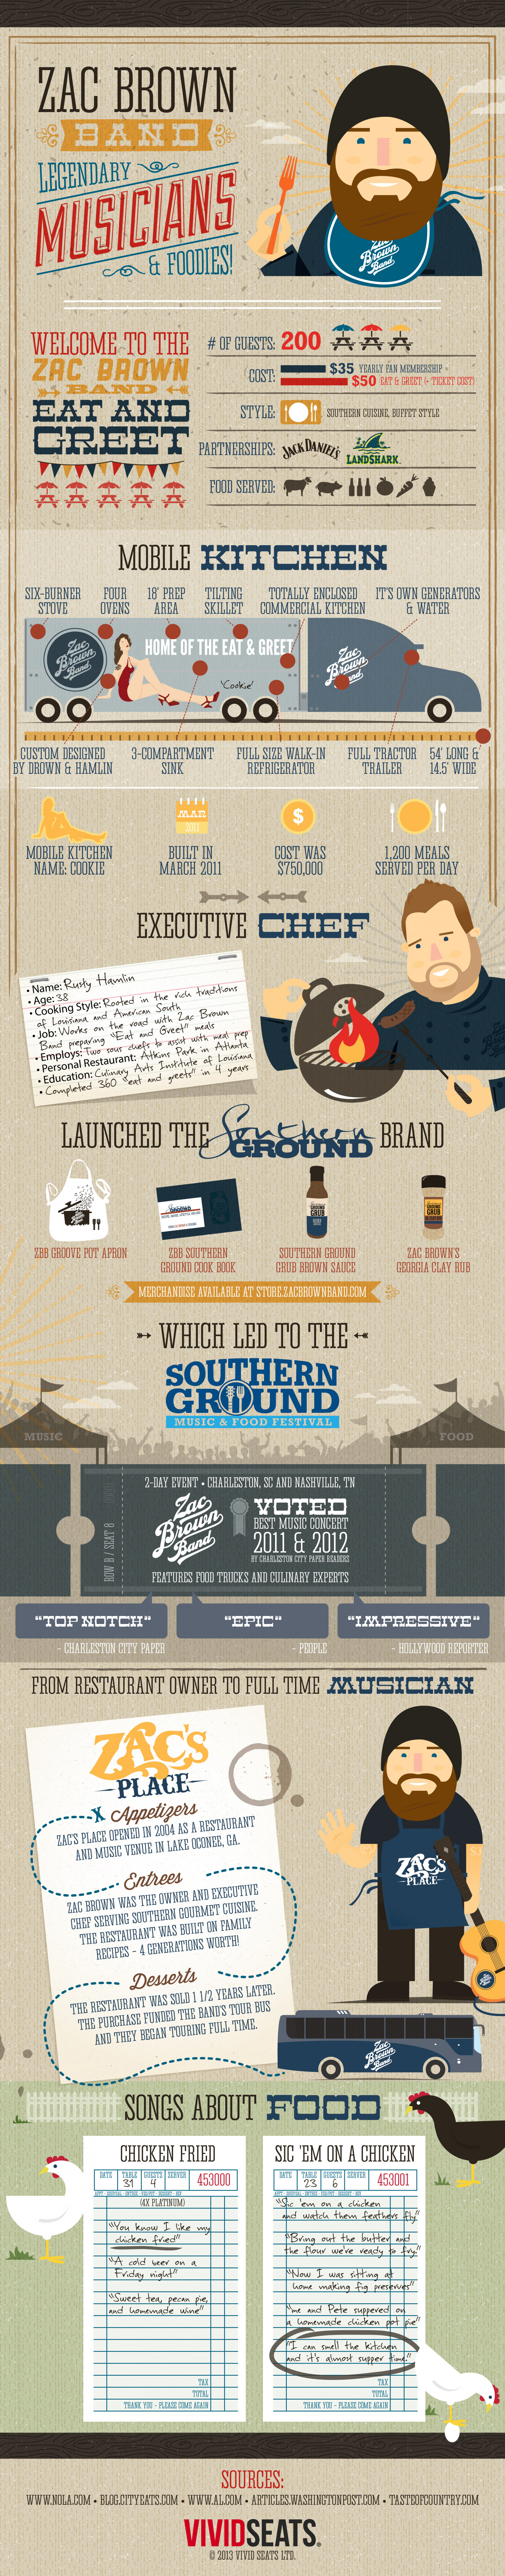 Zac Brown Band: Legendary Musicians and Foodies Infographic